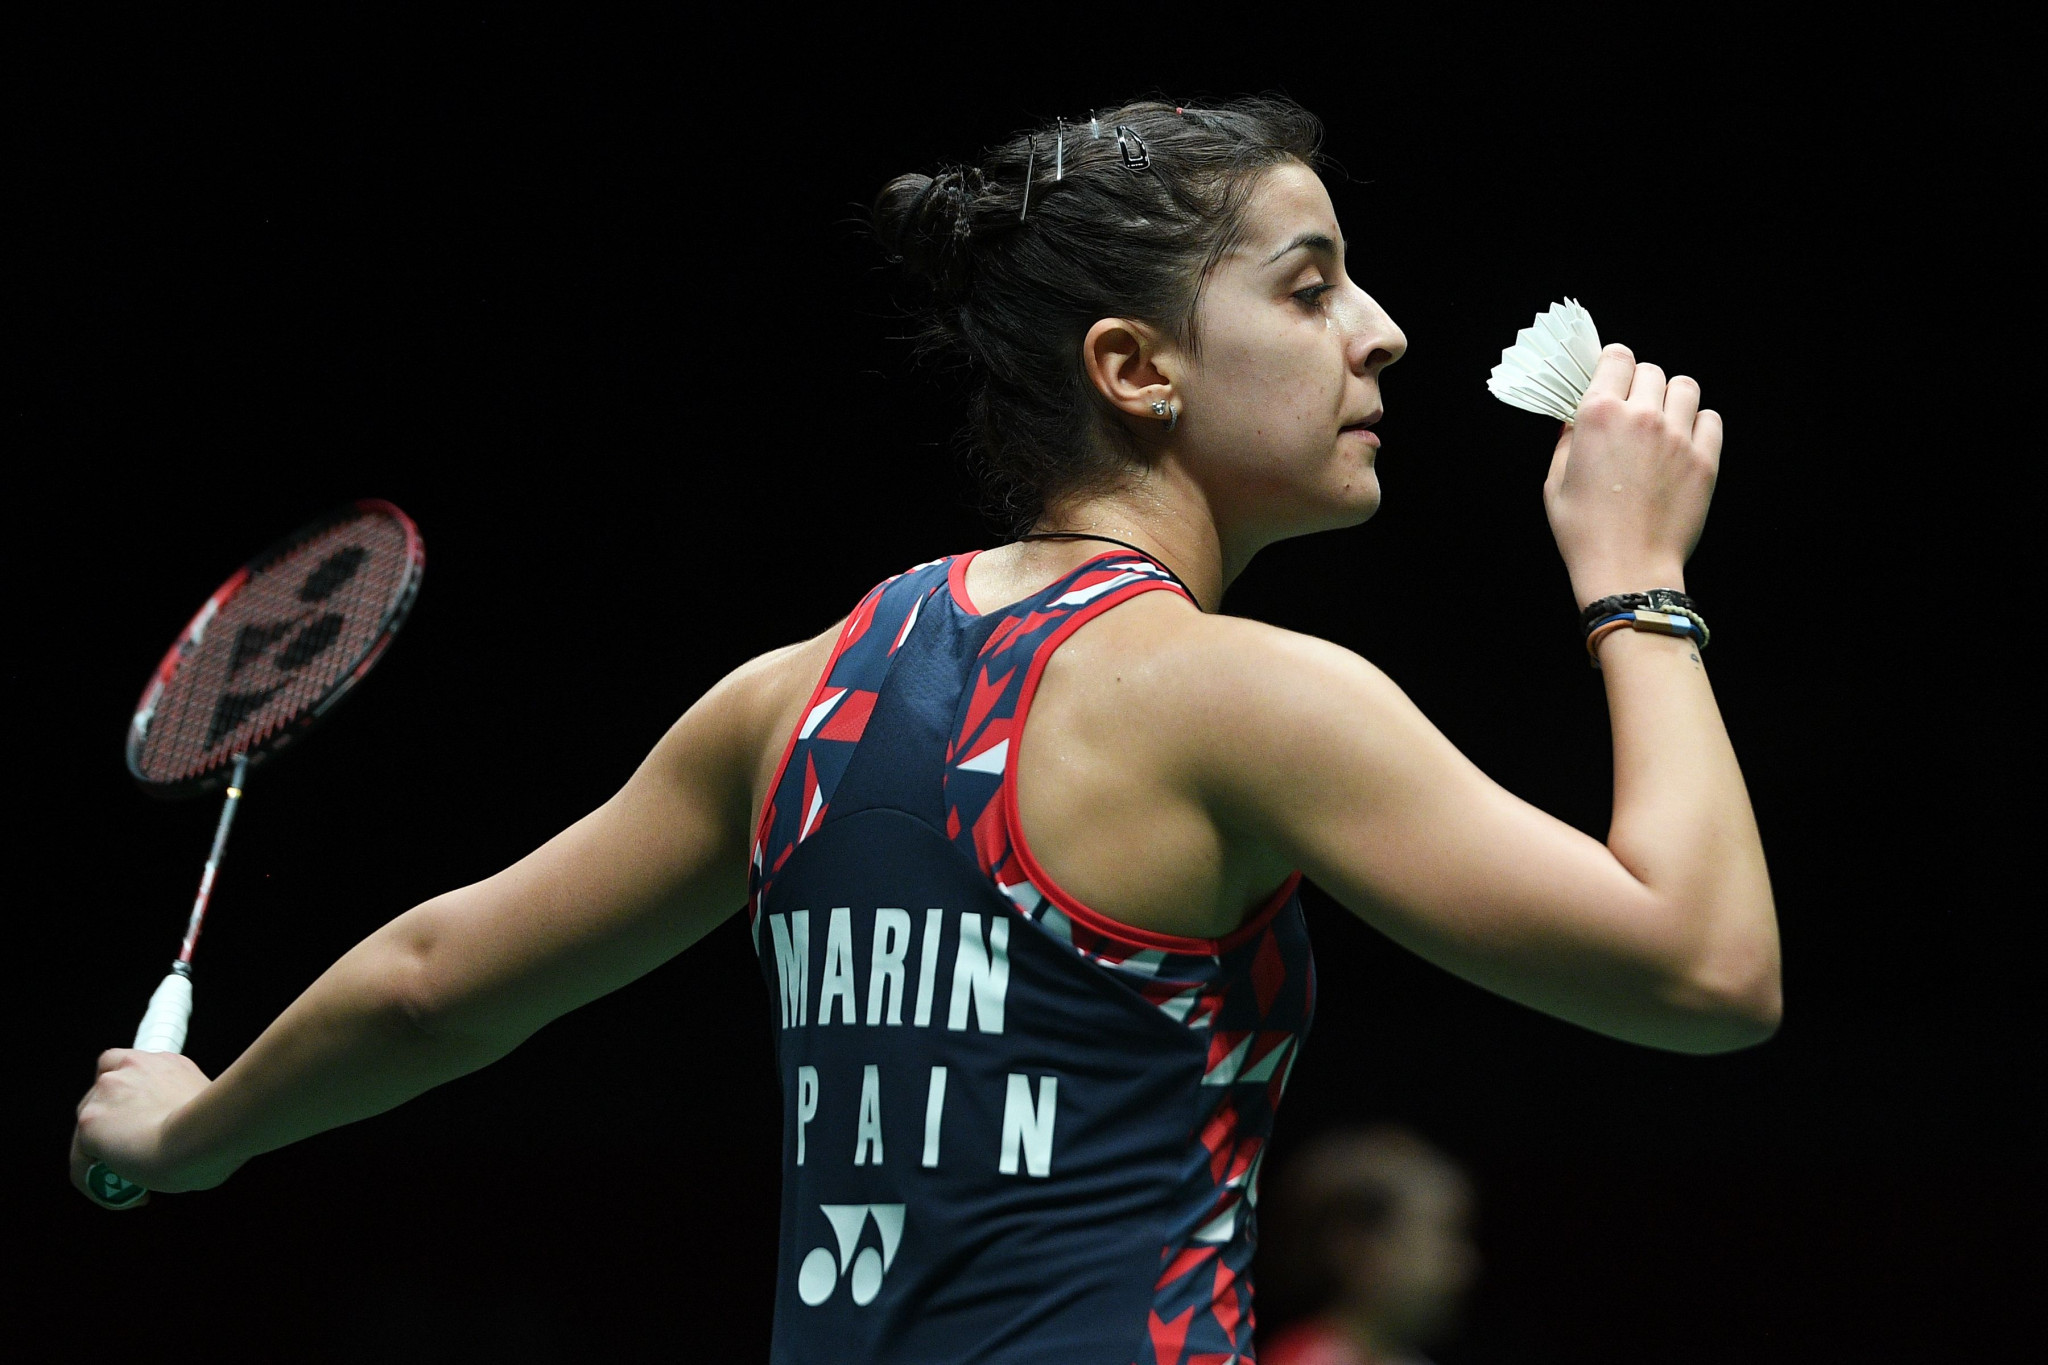 Marin wins heavyweight tussle at BWF Indonesia Masters